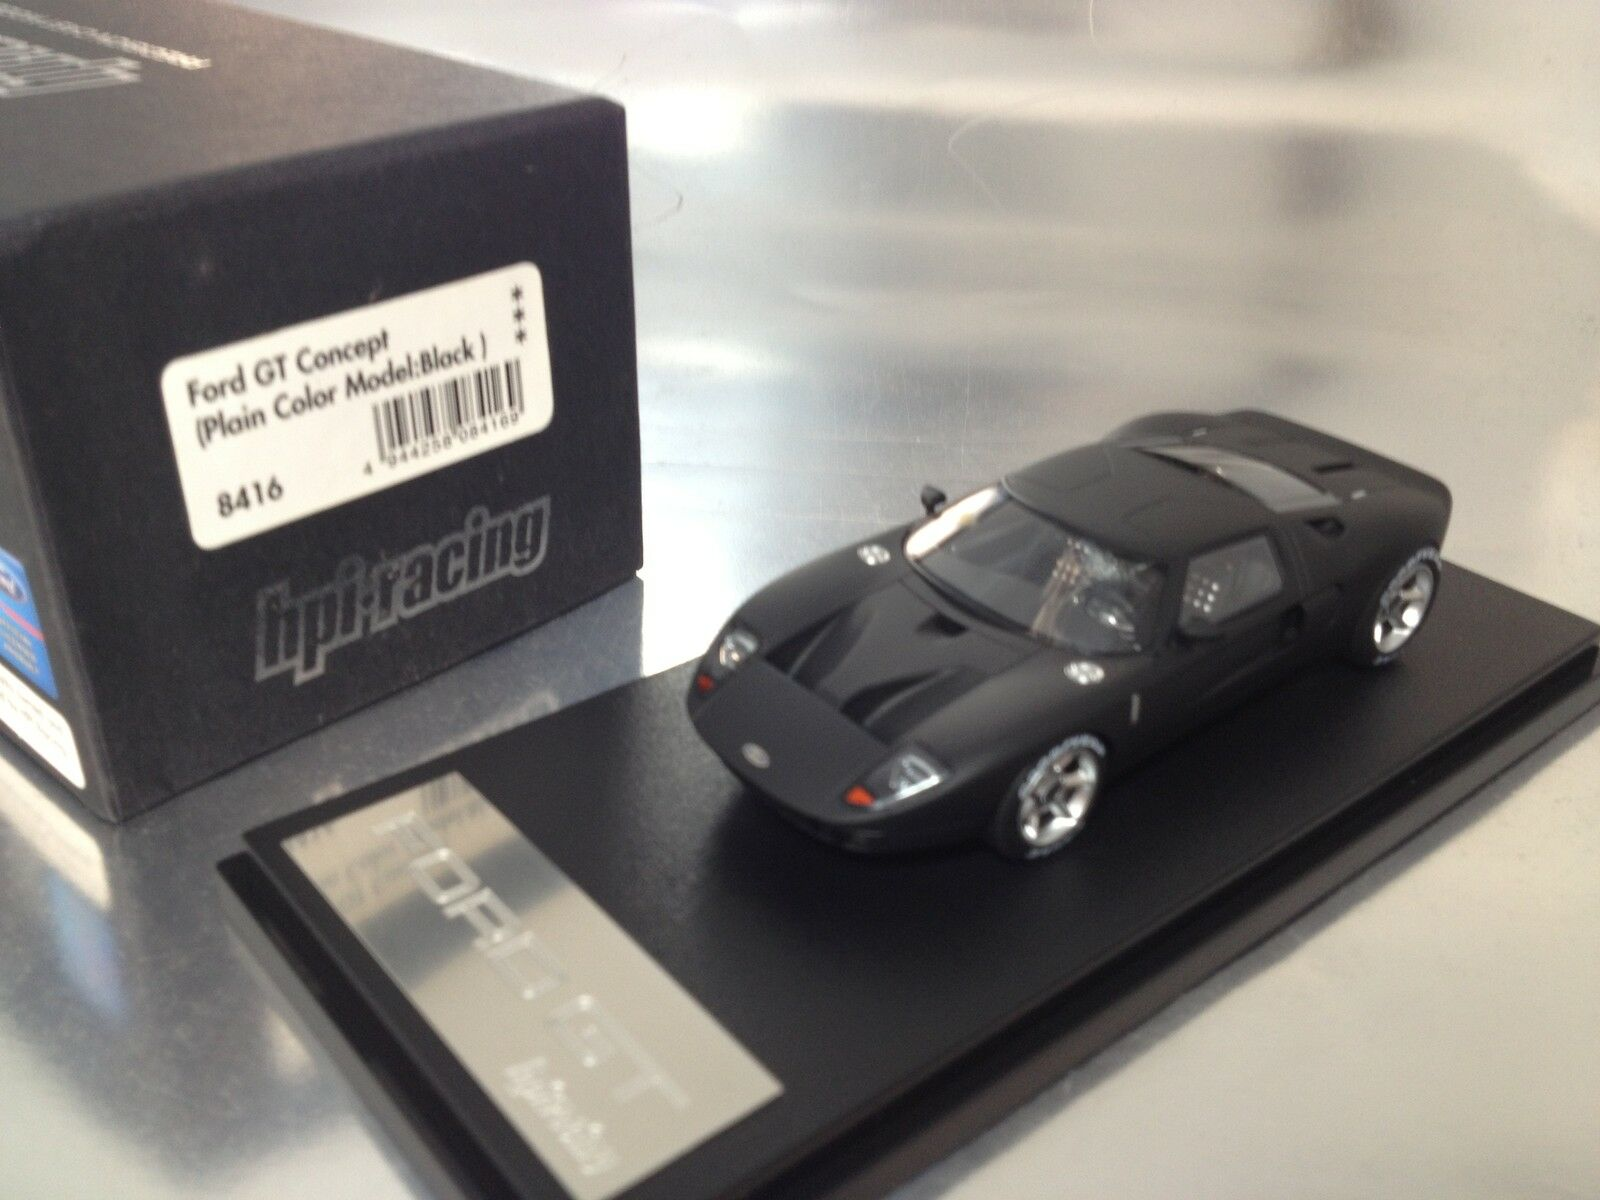 1/43 HPI-Racing 8416 Ford GT Concepto Negro Mate